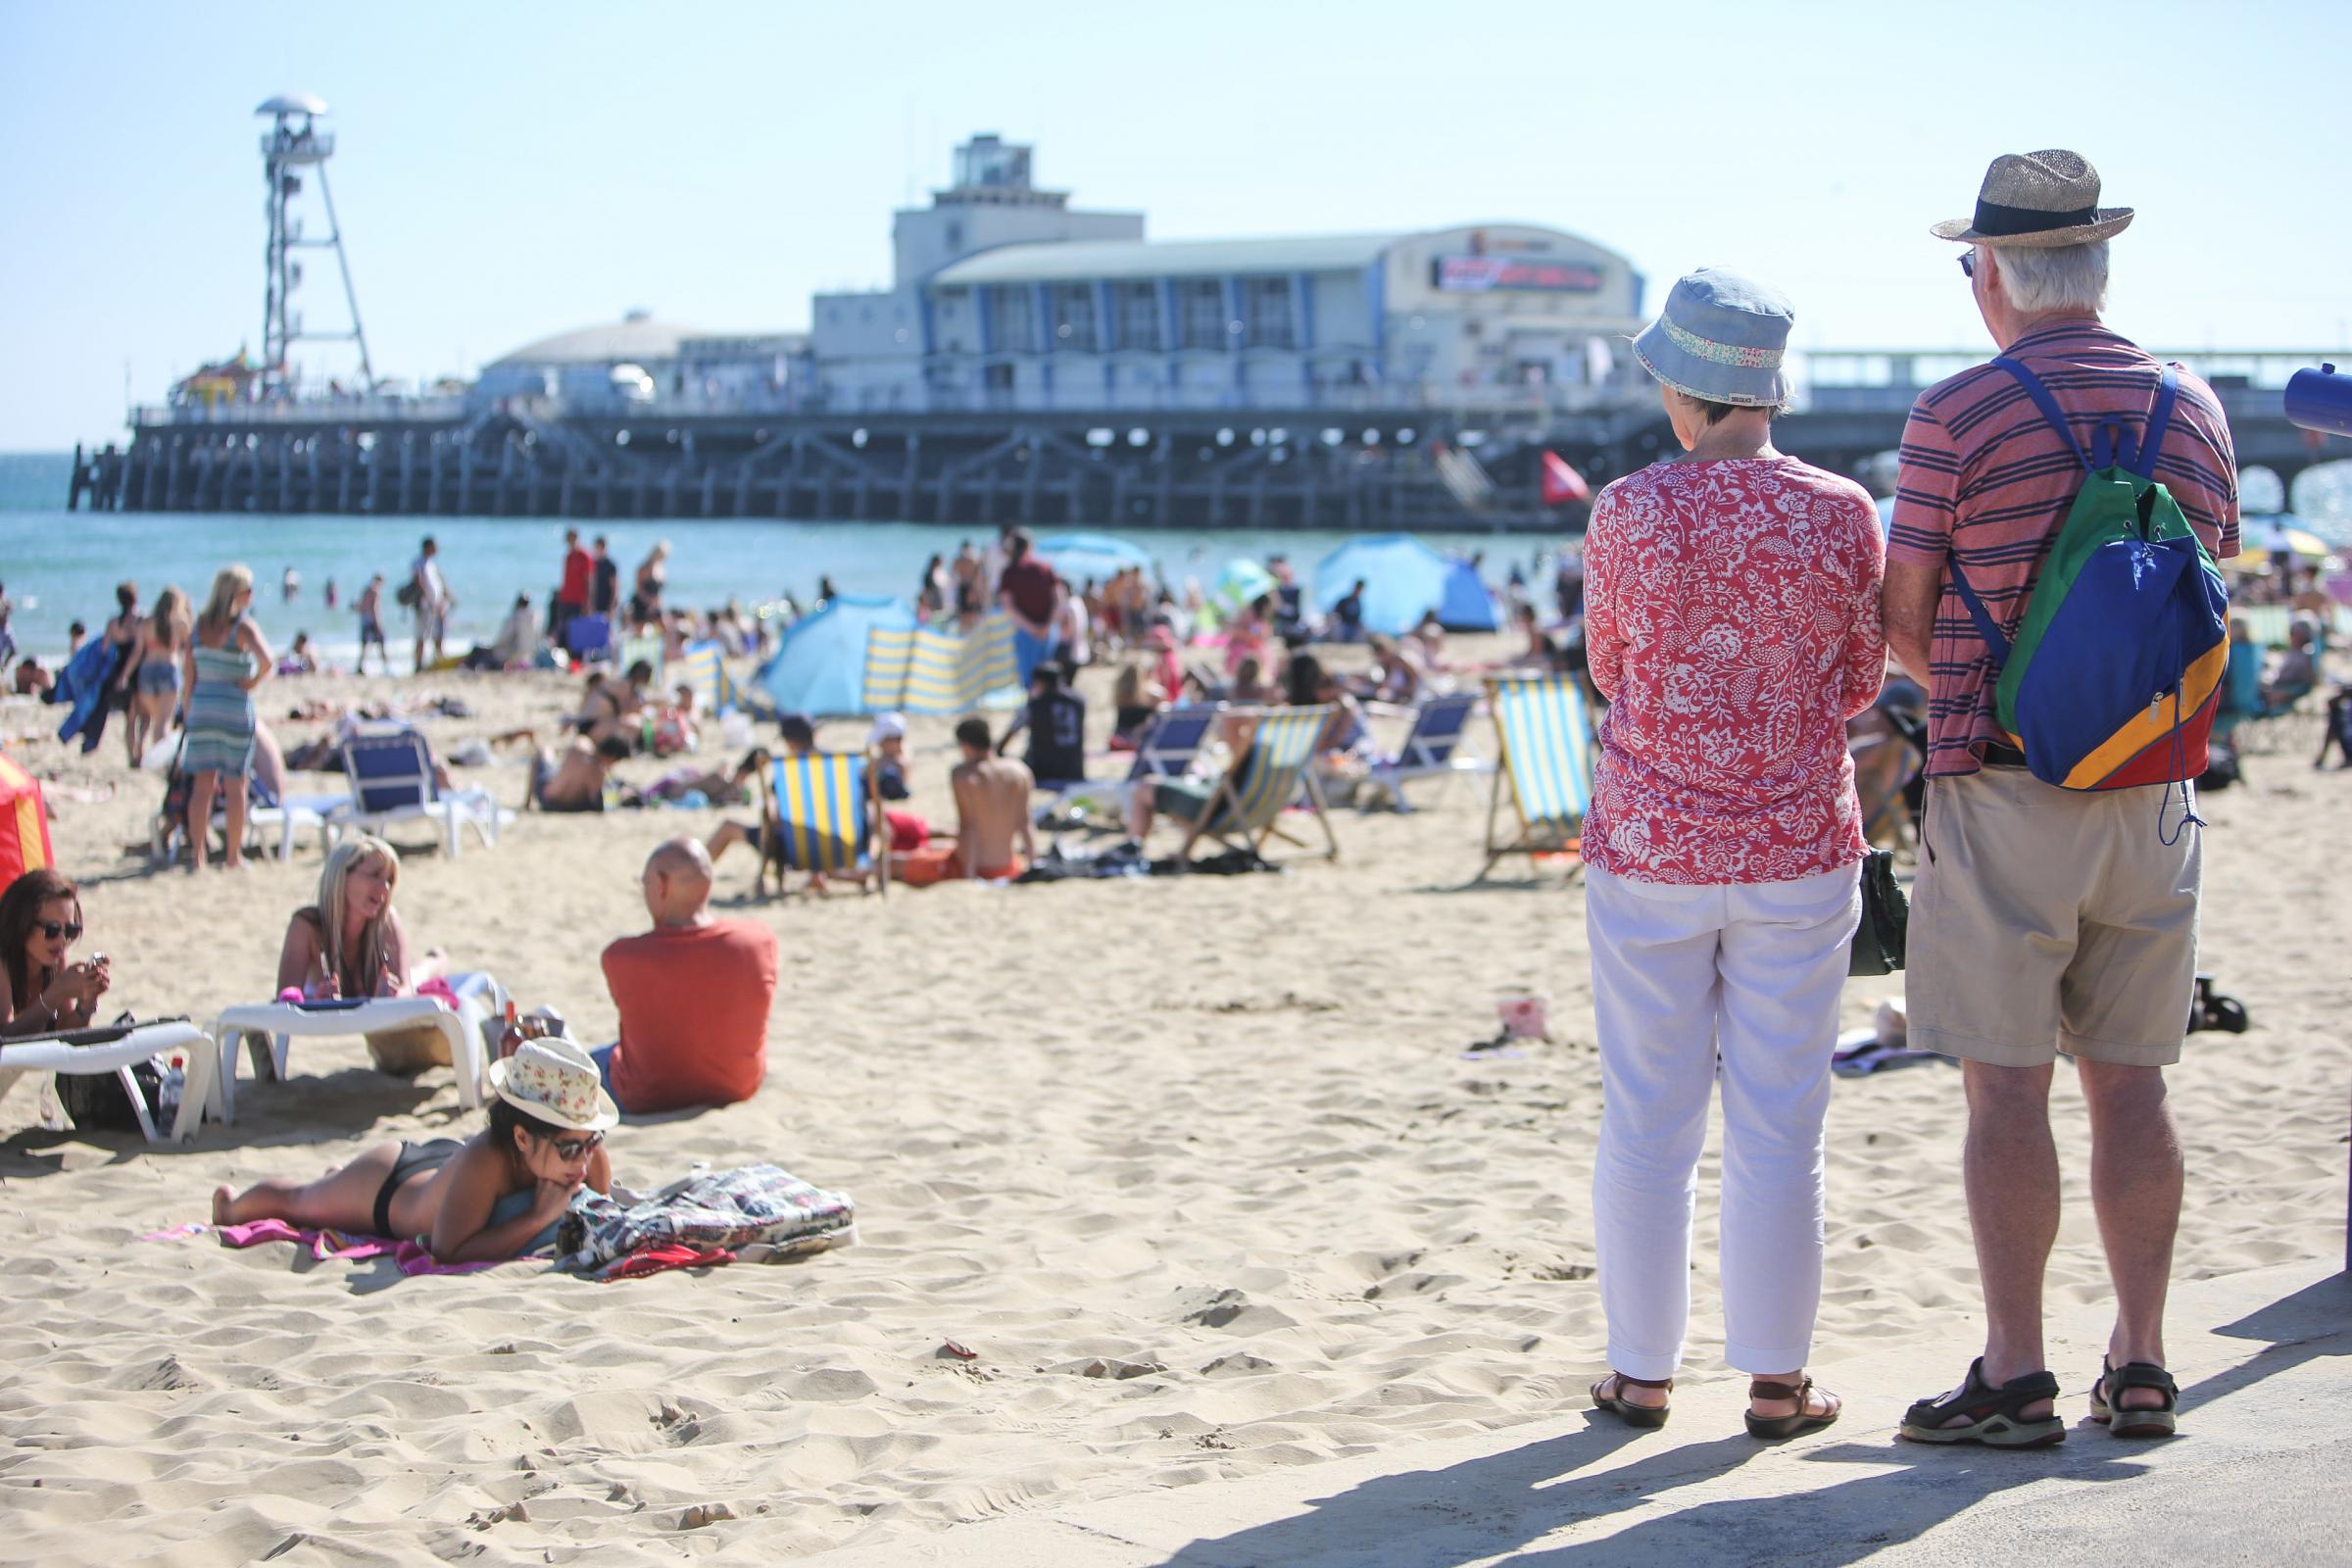 Here's the weather forecast for this weekend (and it'll be nicer in Dorset than in Malaga)